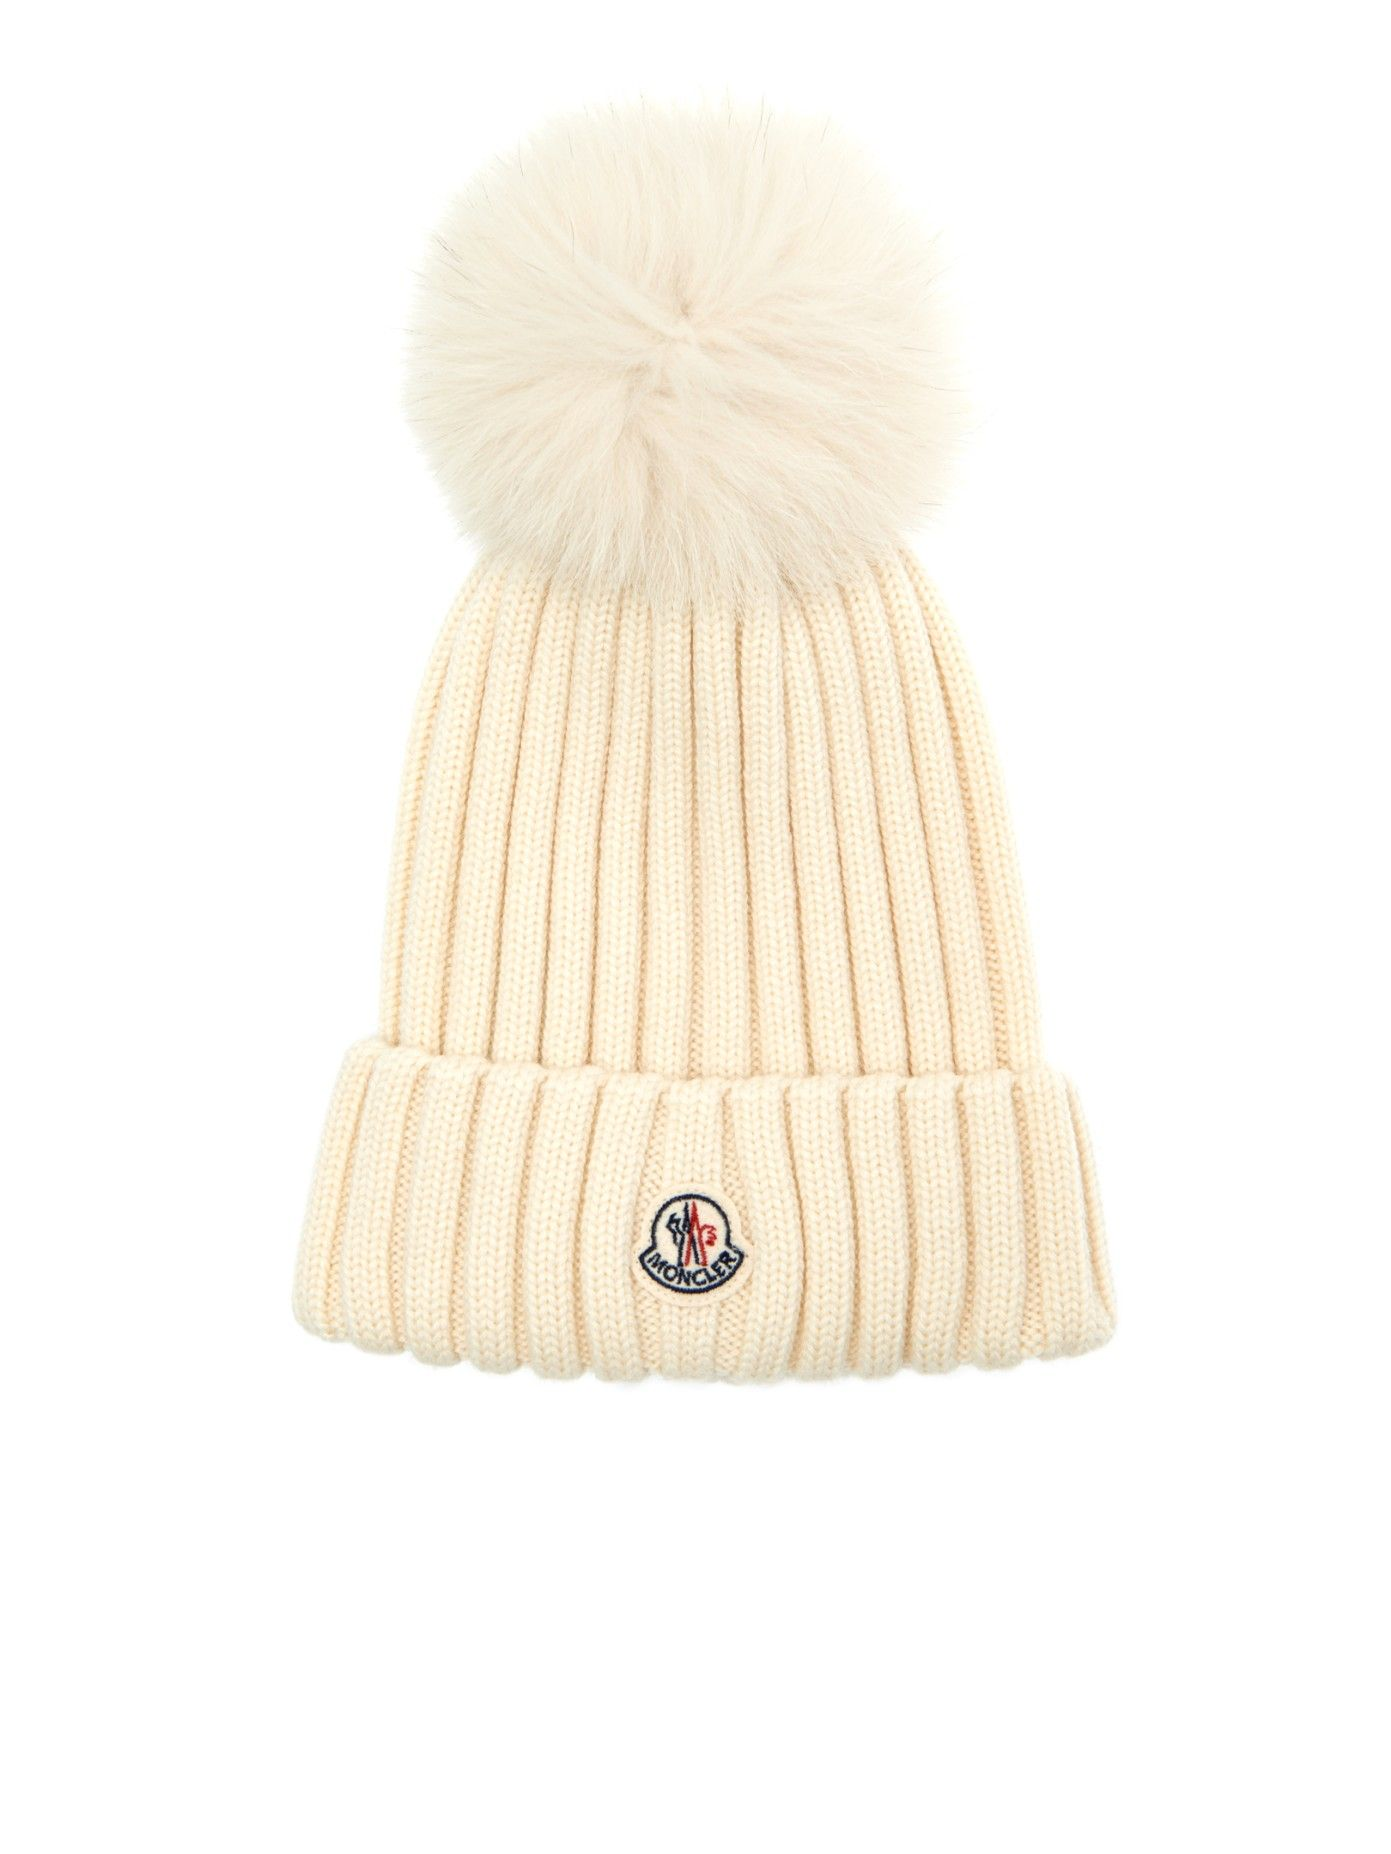 ad893e9f1 Fox-fur pom-pom knitted hat